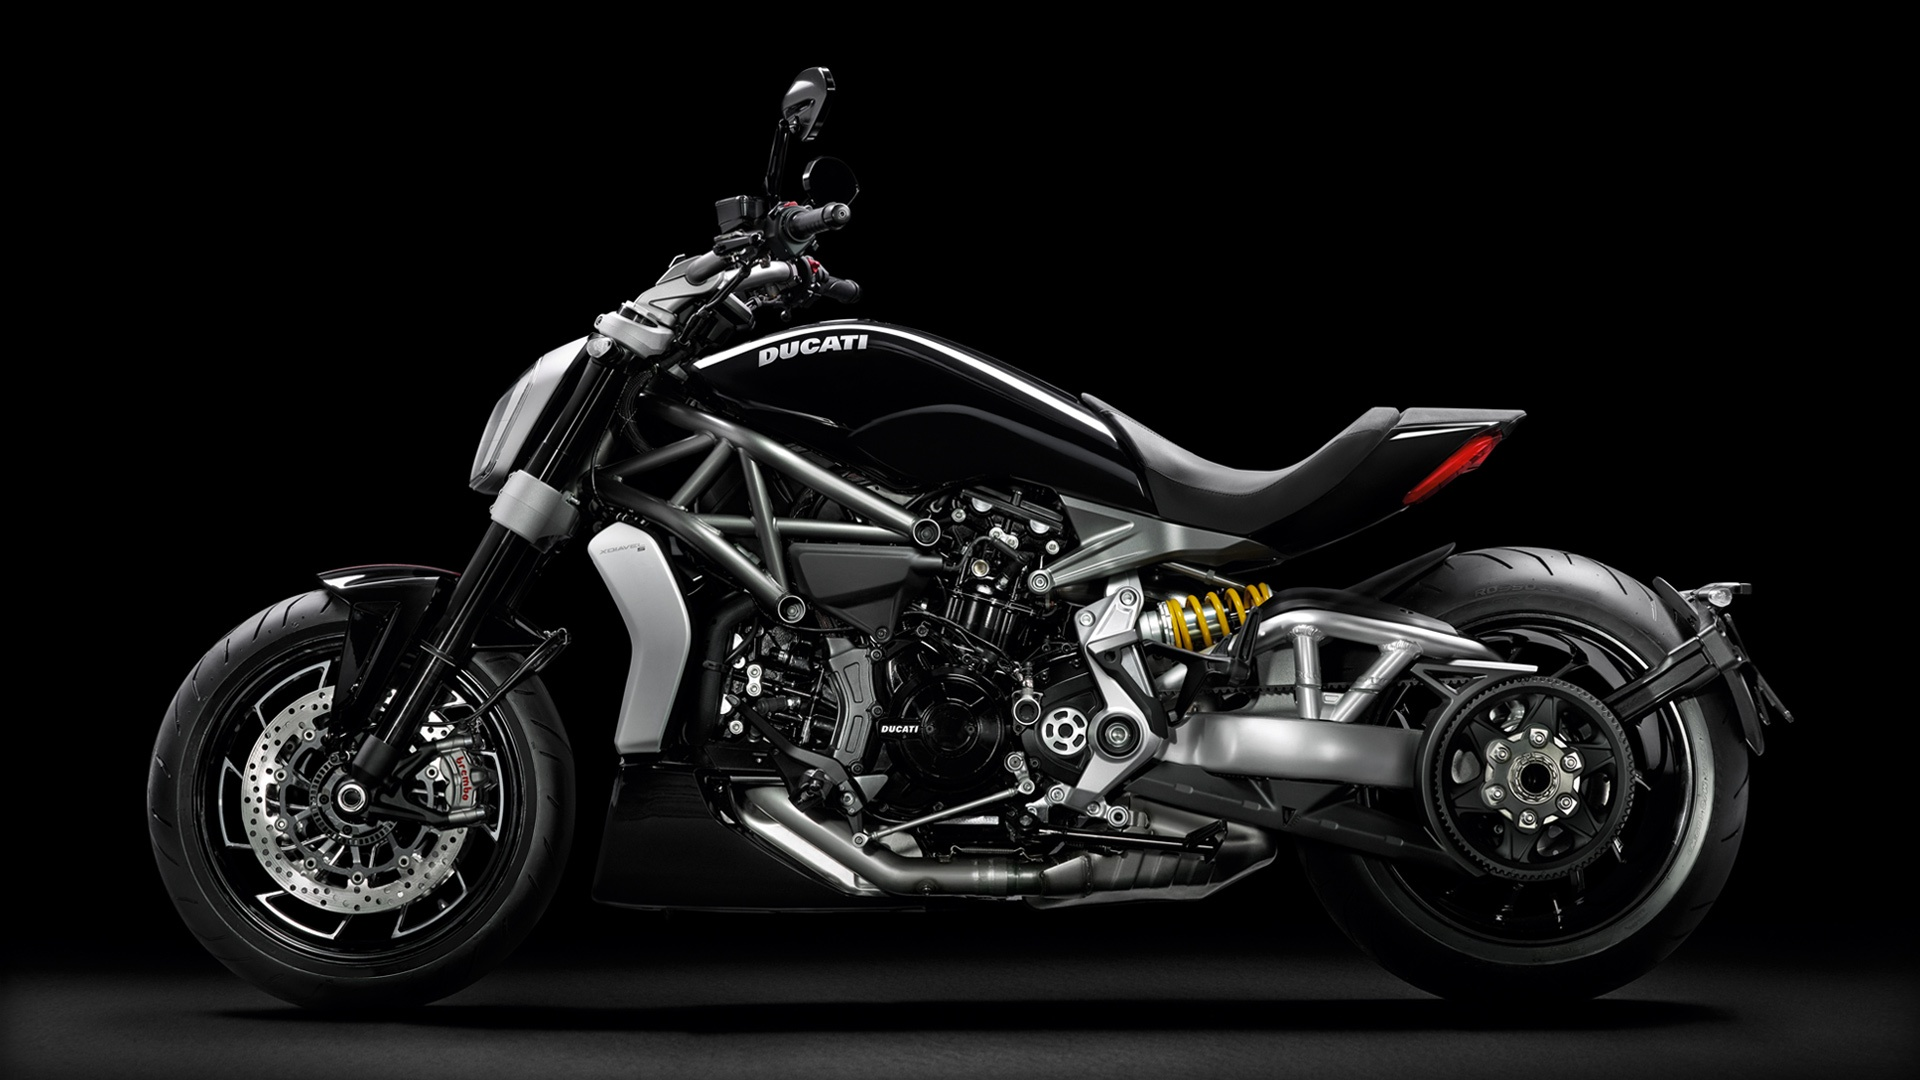 ducati x diavel s for sale uk ducati manchester. Black Bedroom Furniture Sets. Home Design Ideas